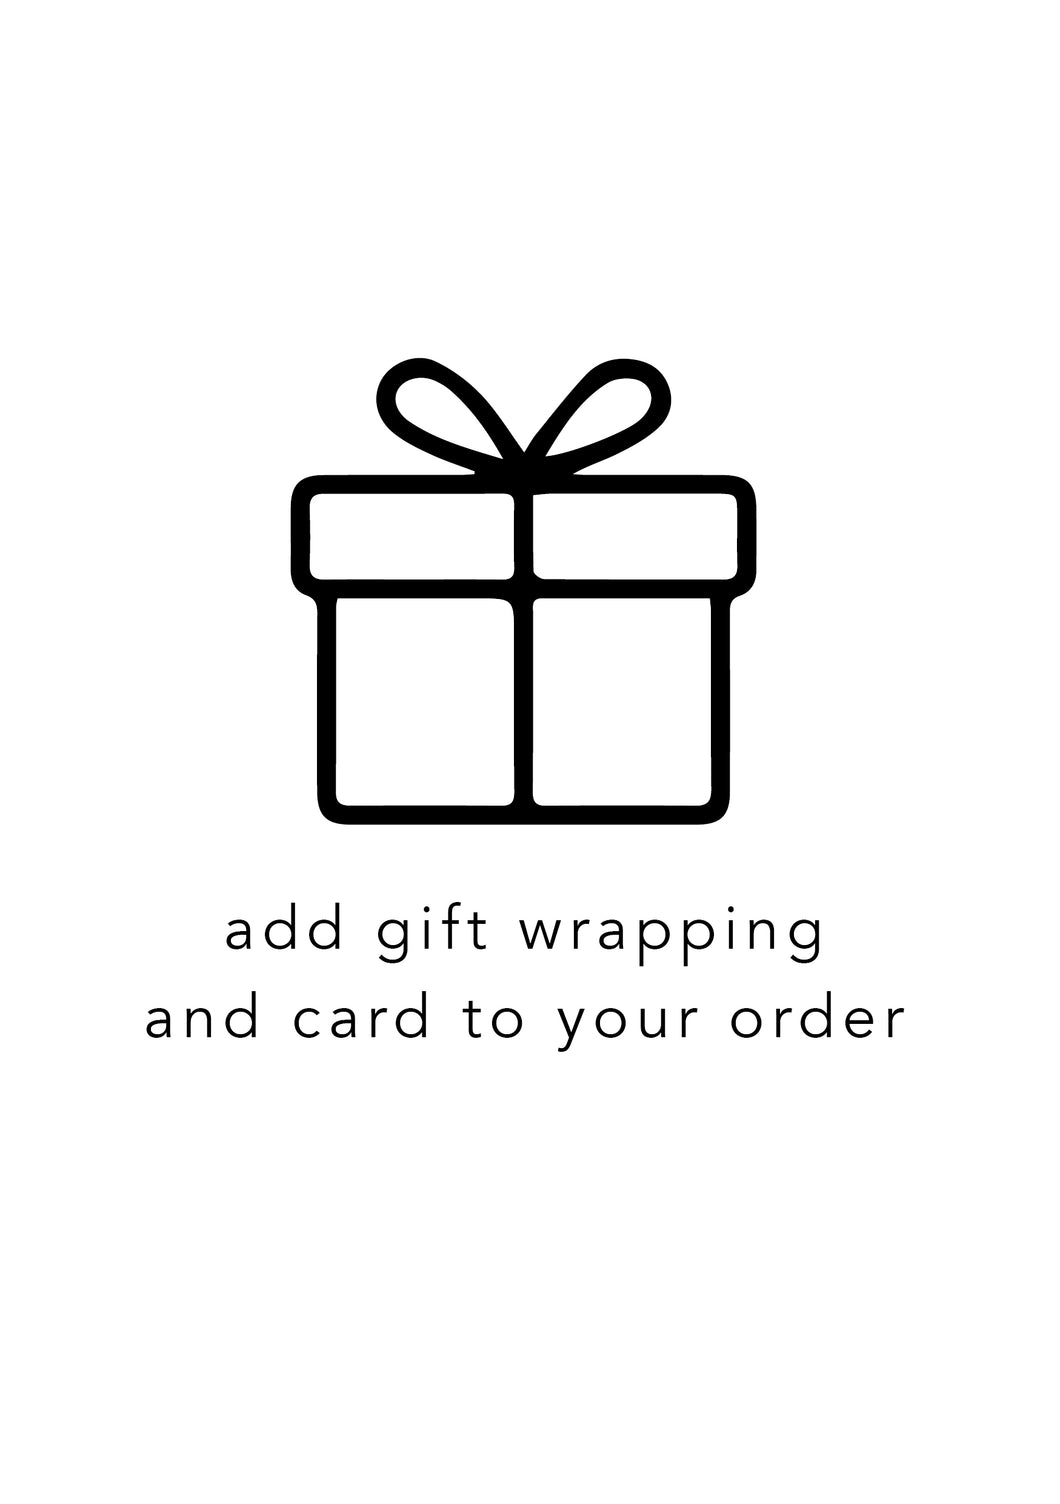 gift wrapping & card